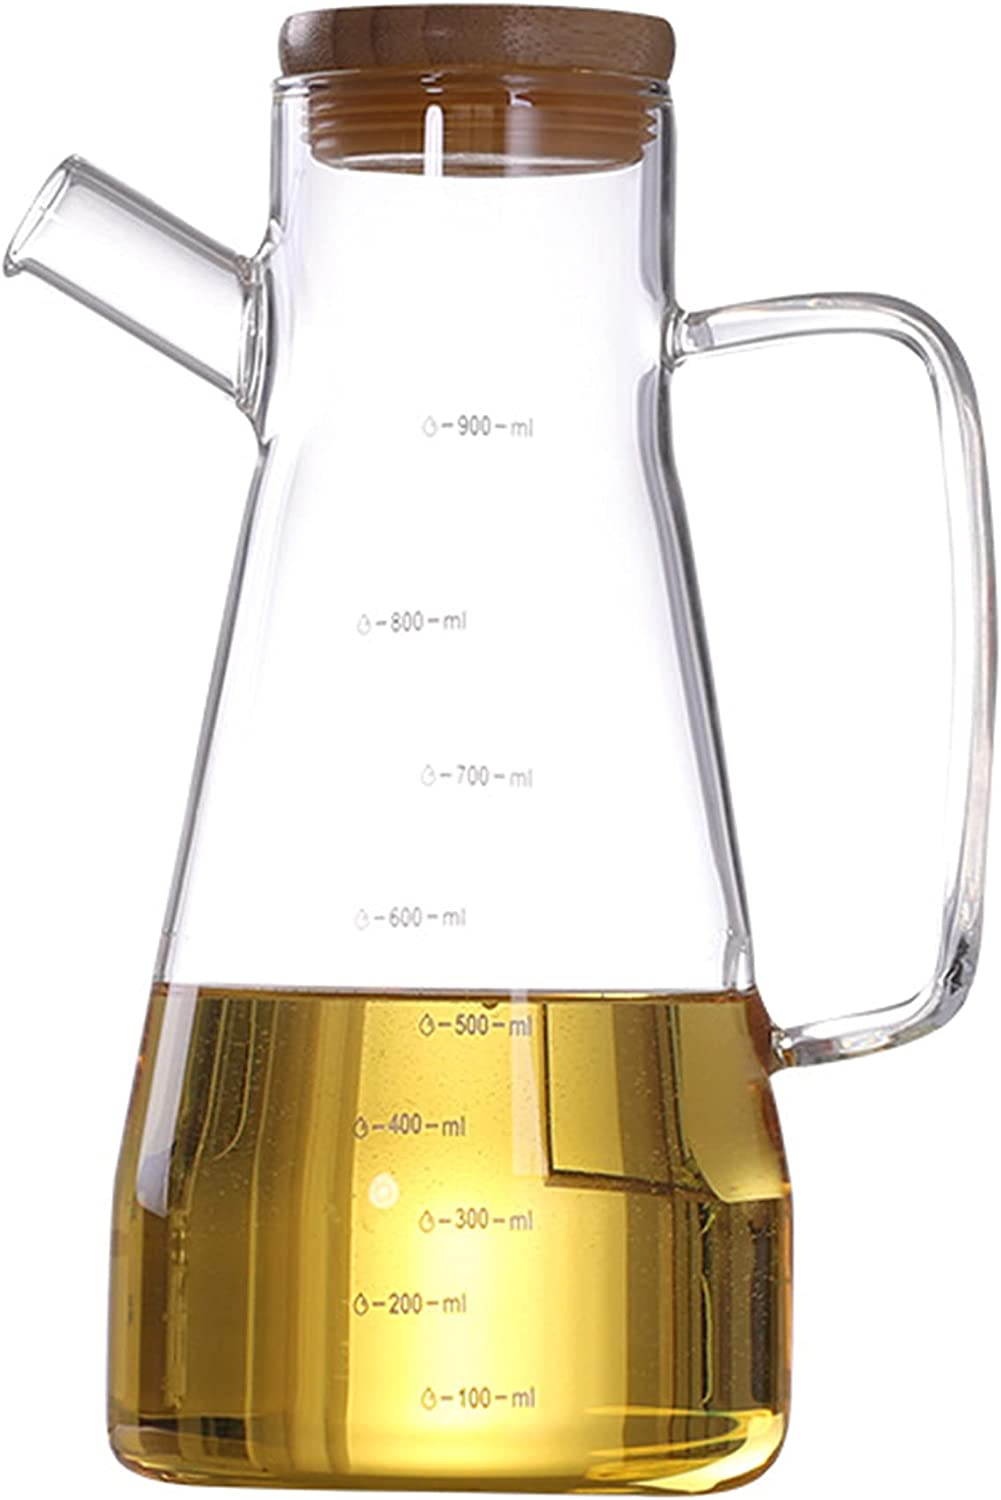 Borosilicate Transparent Glass Olive Oil Tampa Mall Soy Popular products Bottle Pot Vin